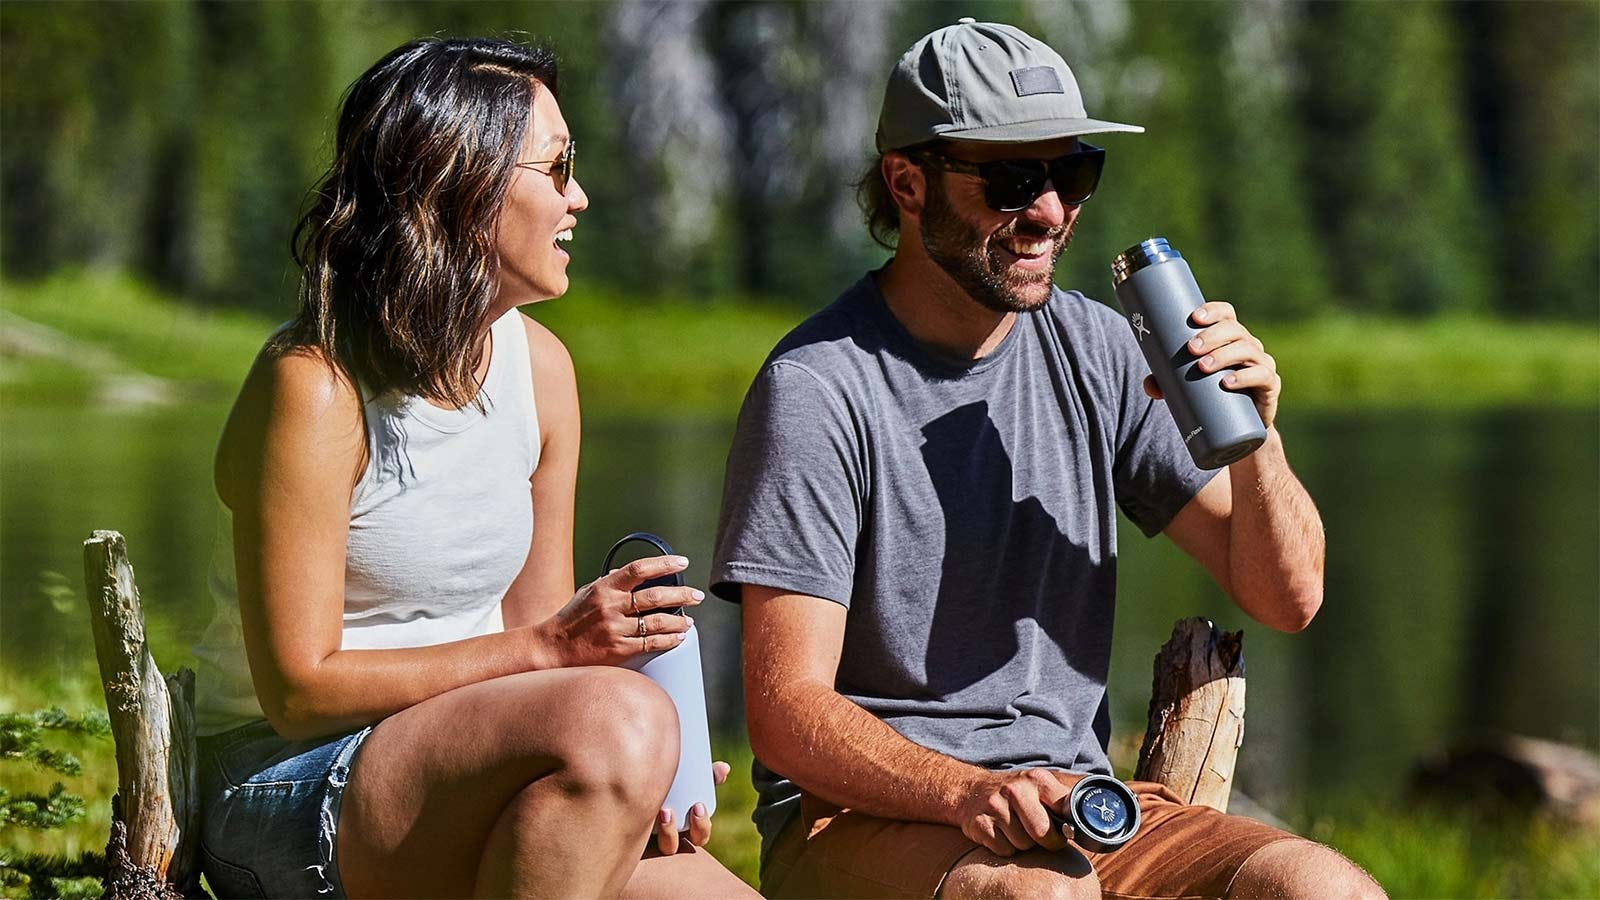 A man and woman holding Hydro Flask water bottles.